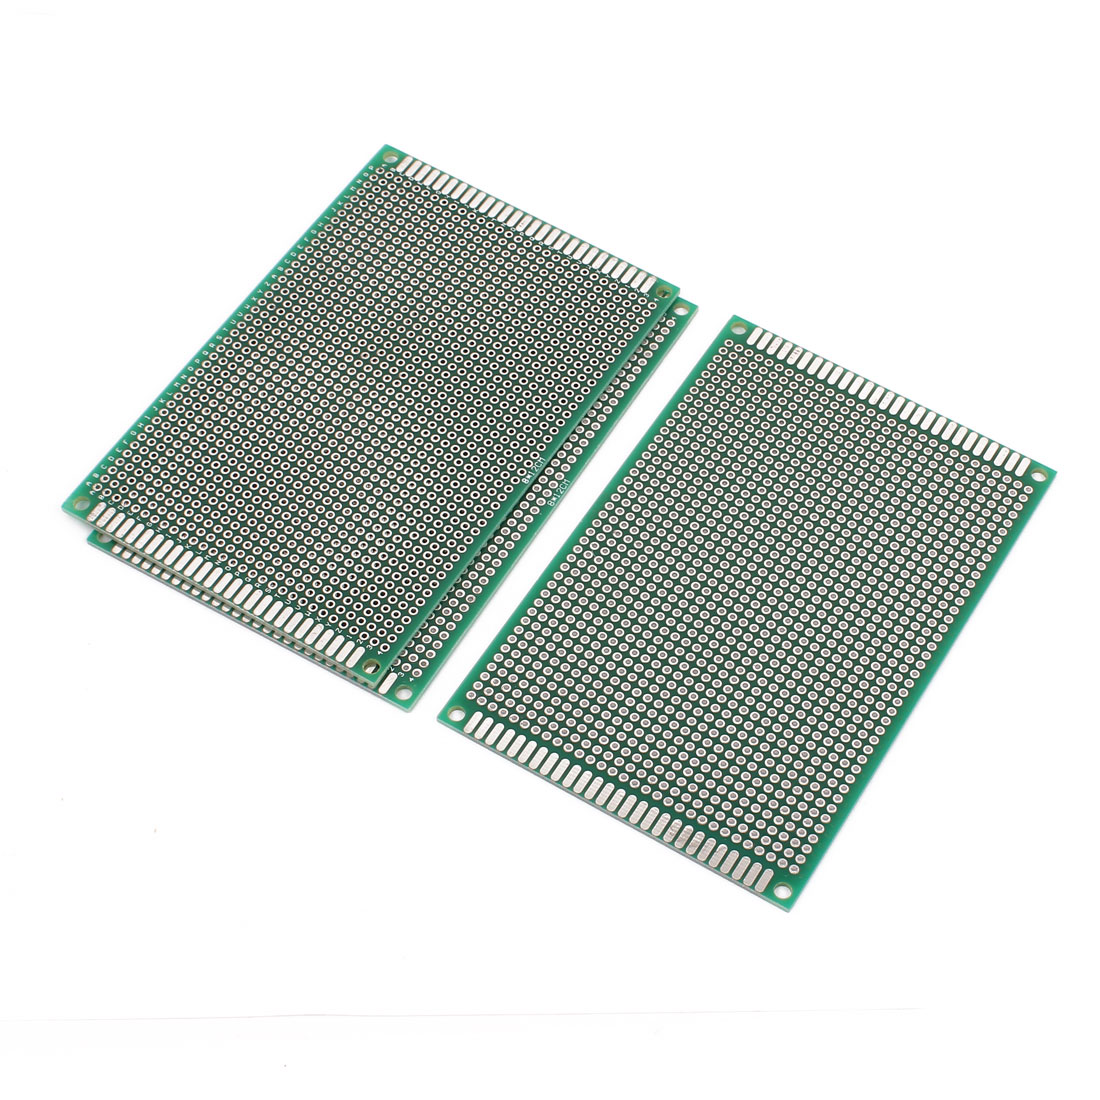 3 Pcs Double Sided Prototype Universal Pcb Print Circuit Board 8cm X Doublesided Printed Boards 12cm Green